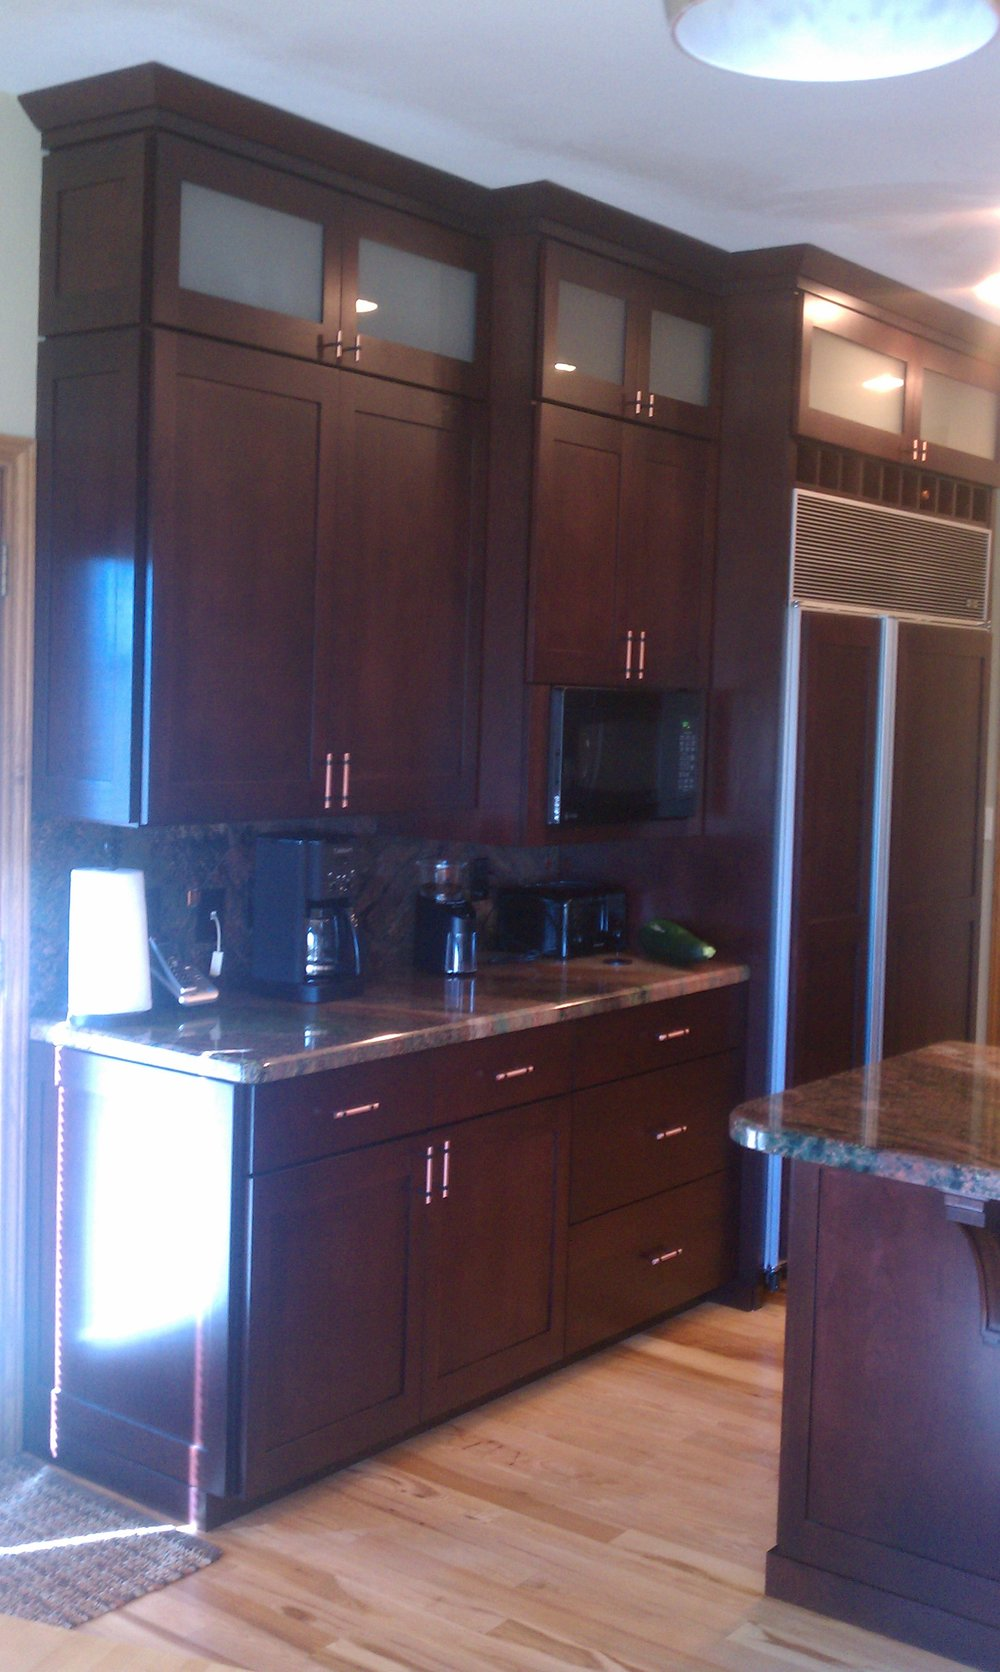 Shaker kitchen with frosted glass doors, full overlay spacing, crown moulding, full size base boards, and shaker side panels.